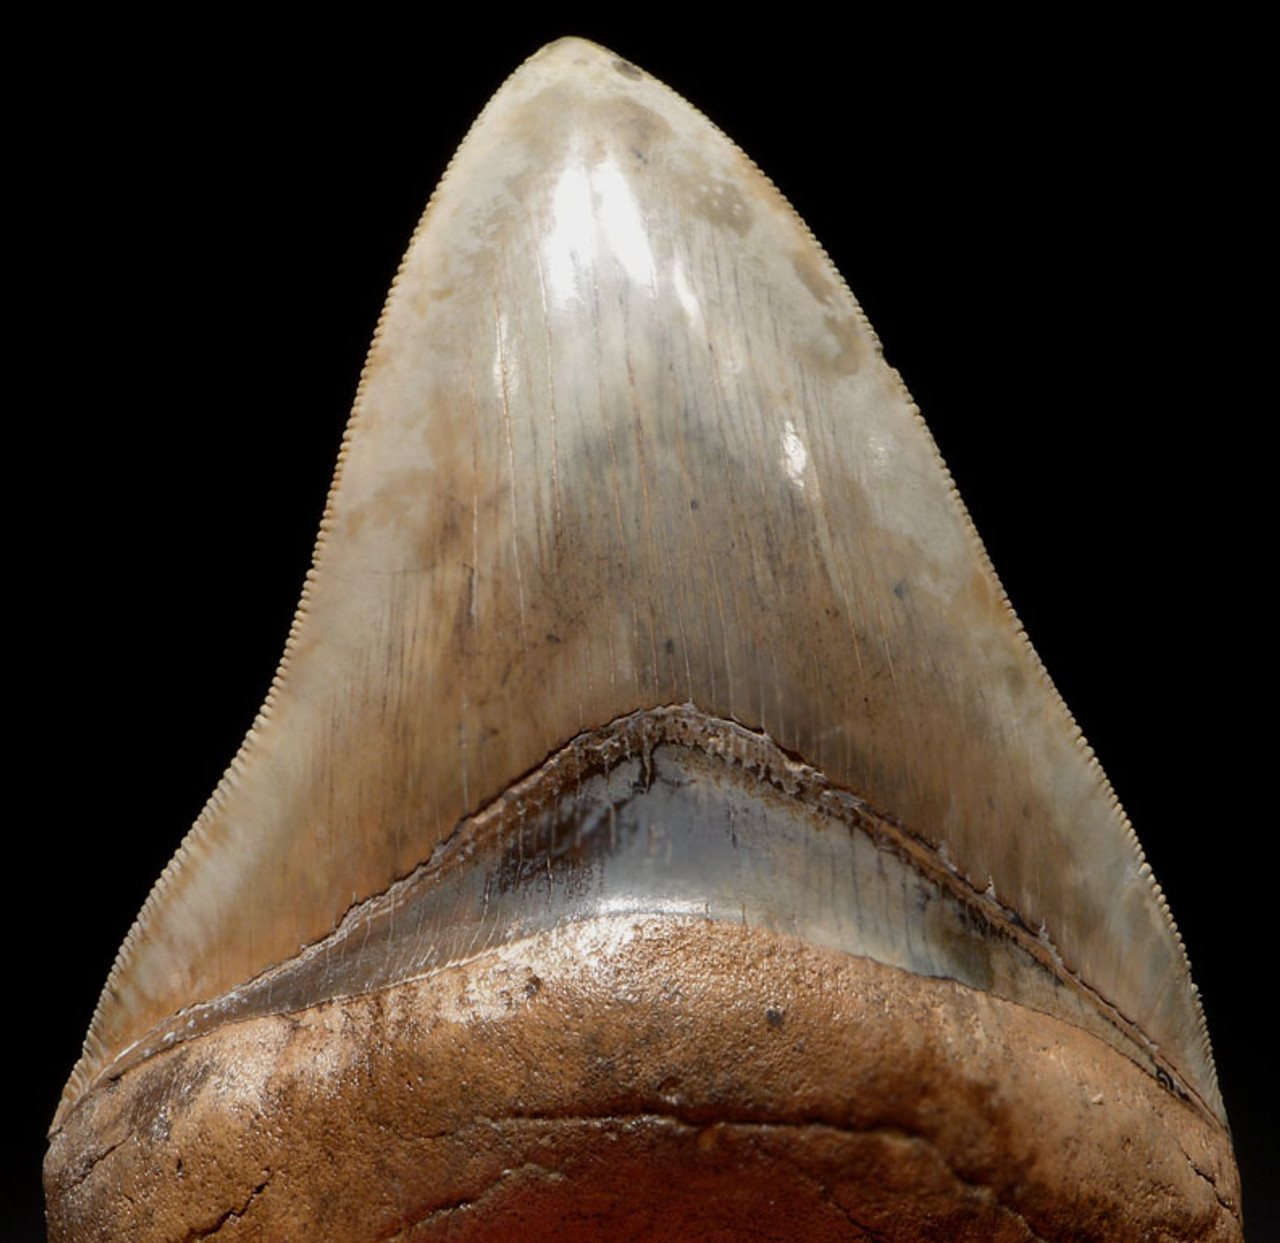 SH6-345 - INVESTMENT GRADE 4 INCH SPOTTED BLUE-GRAY MEGALODON SHARK TOOTH